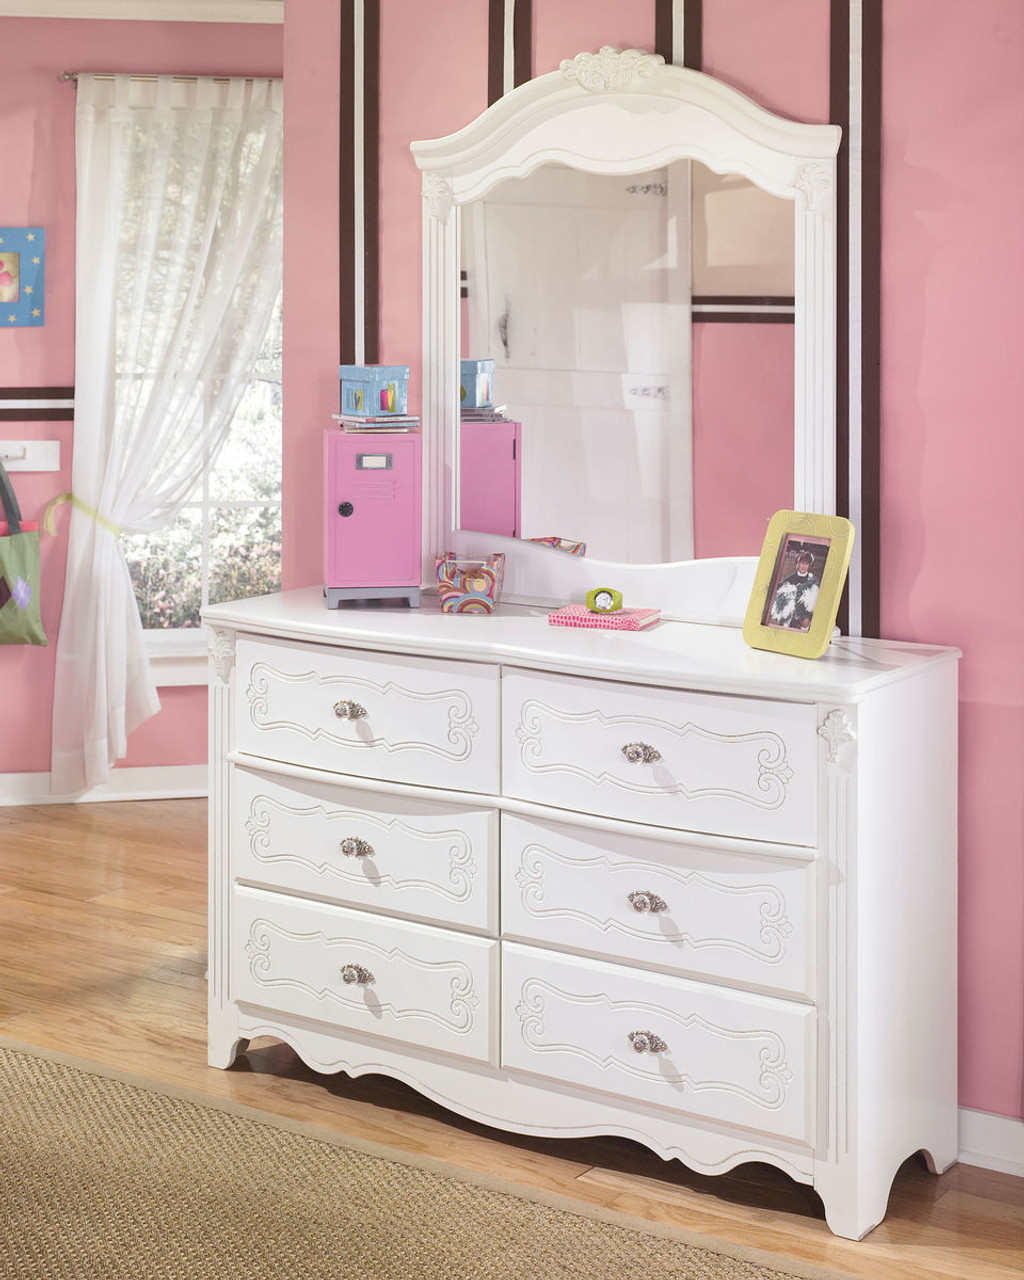 Exquisite White Dresser Mirror Sold At Hilton Furniture Serving Houston Tx Ands Surrounding Areas